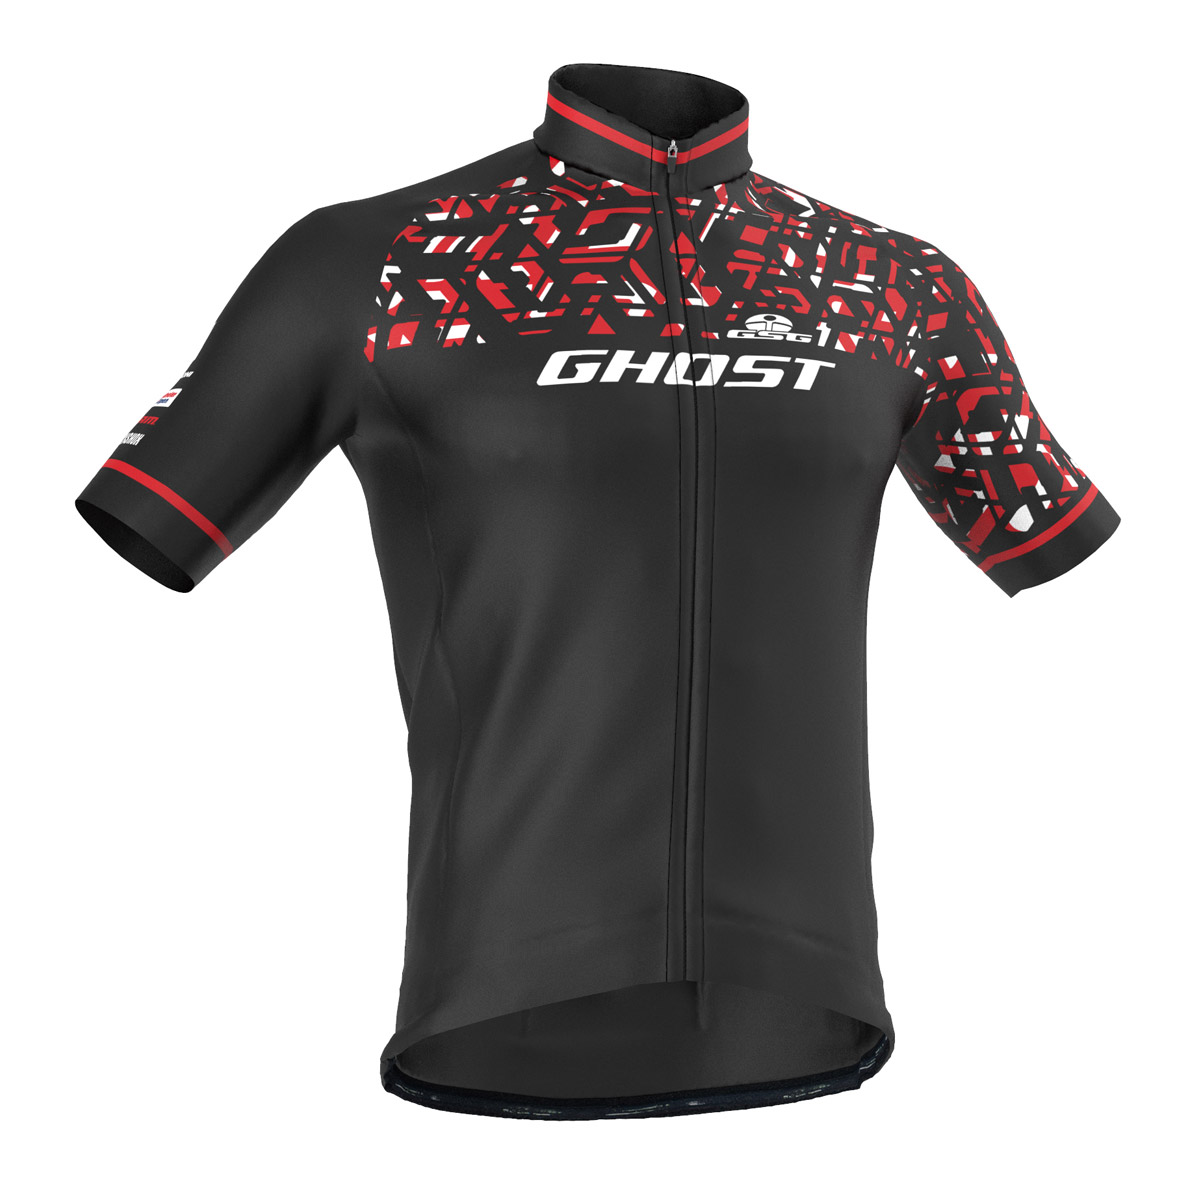 2018 Maillot Ghost Factory racing